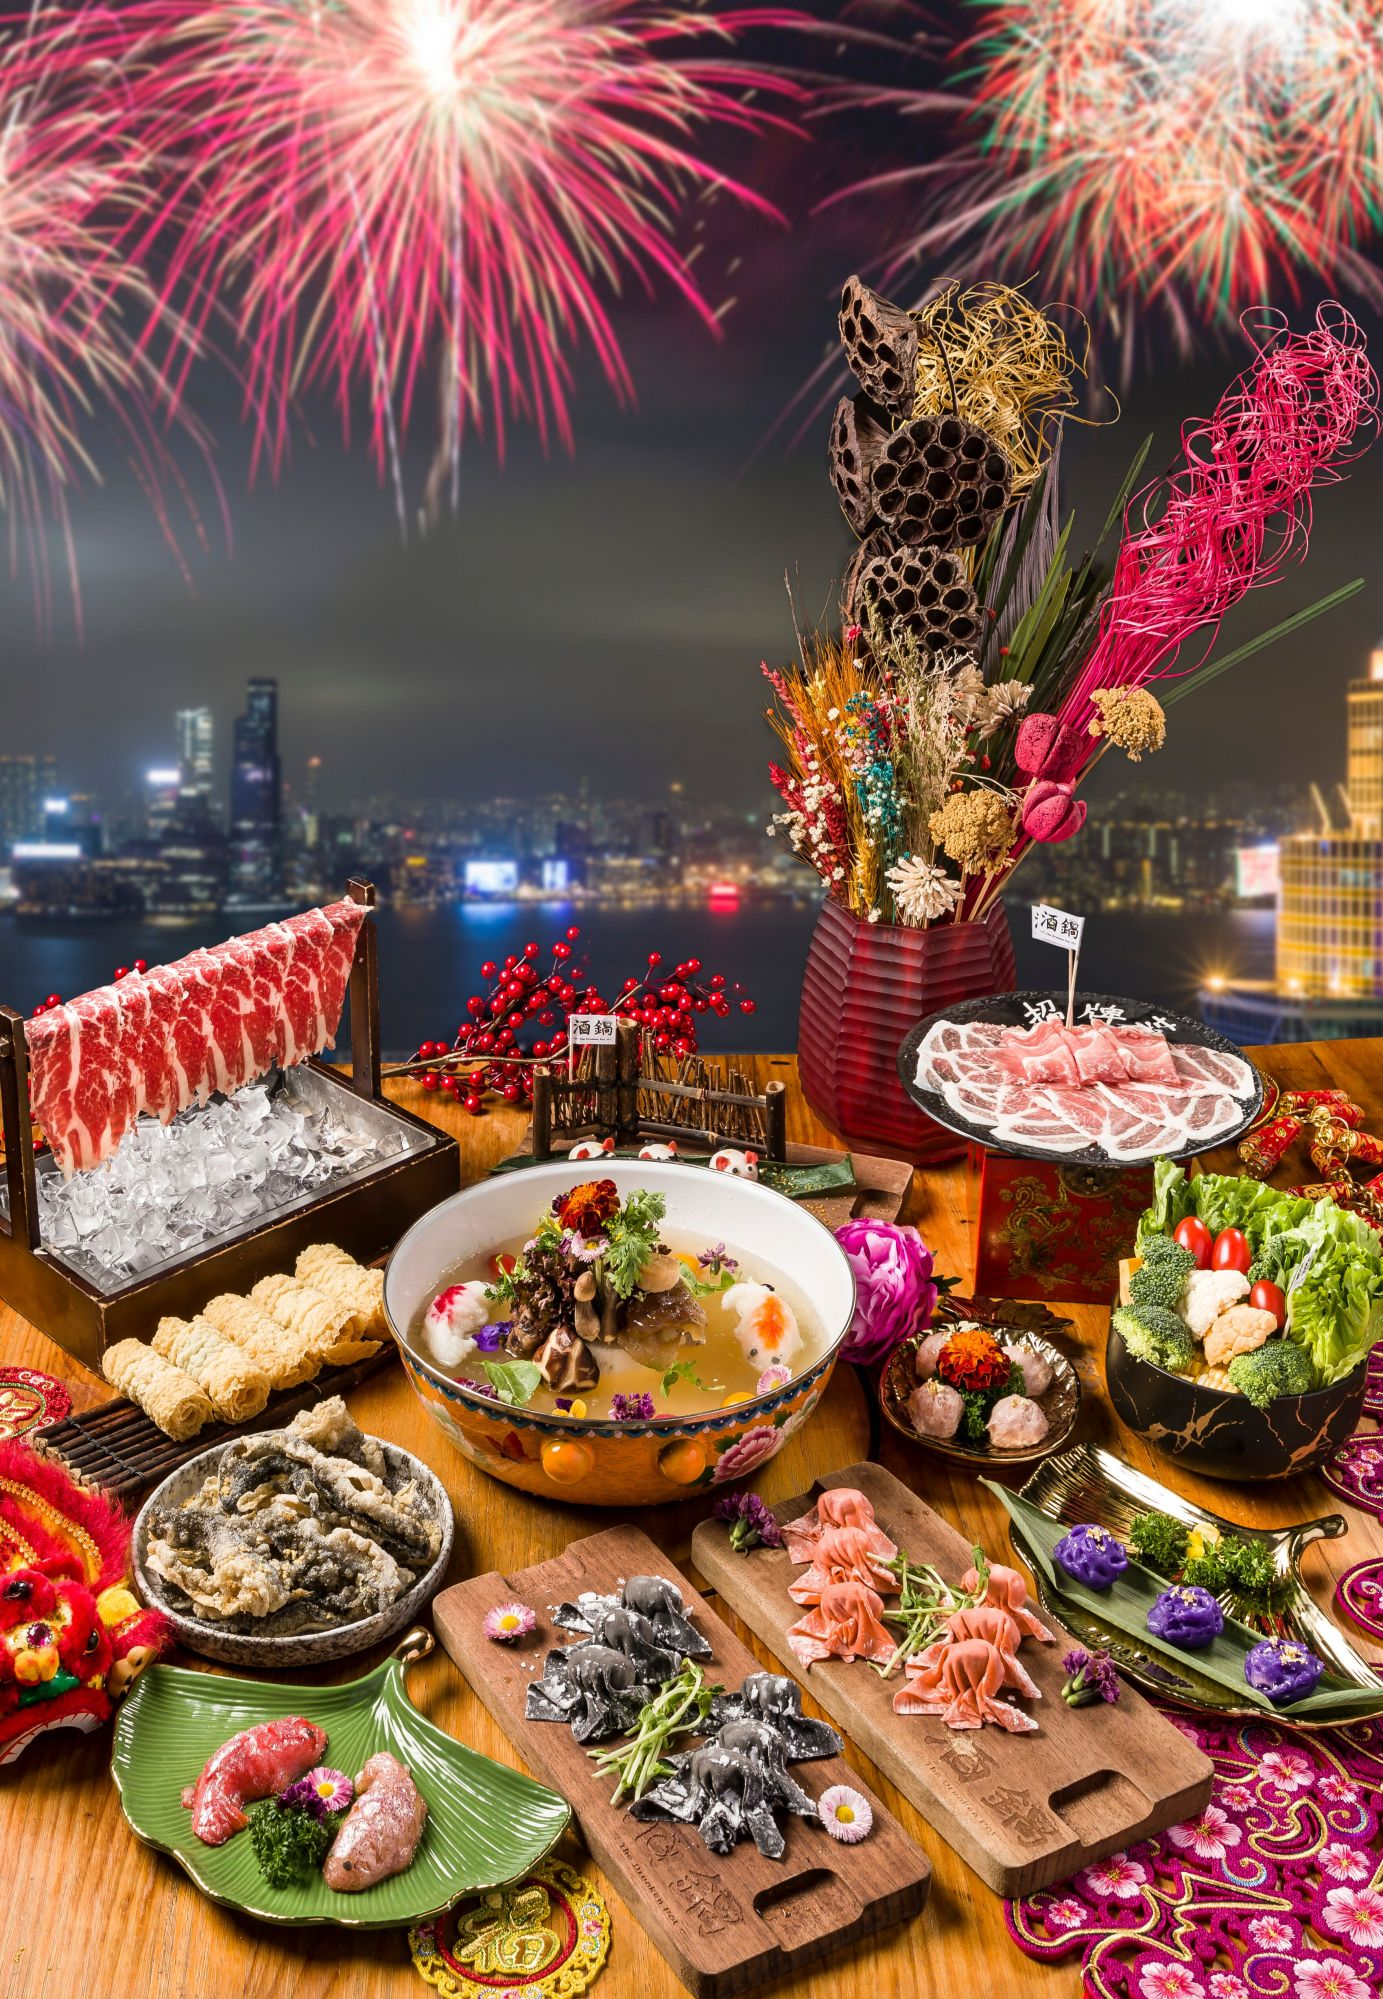 5 Best Places To Dine For An Auspicious Chinese New Year